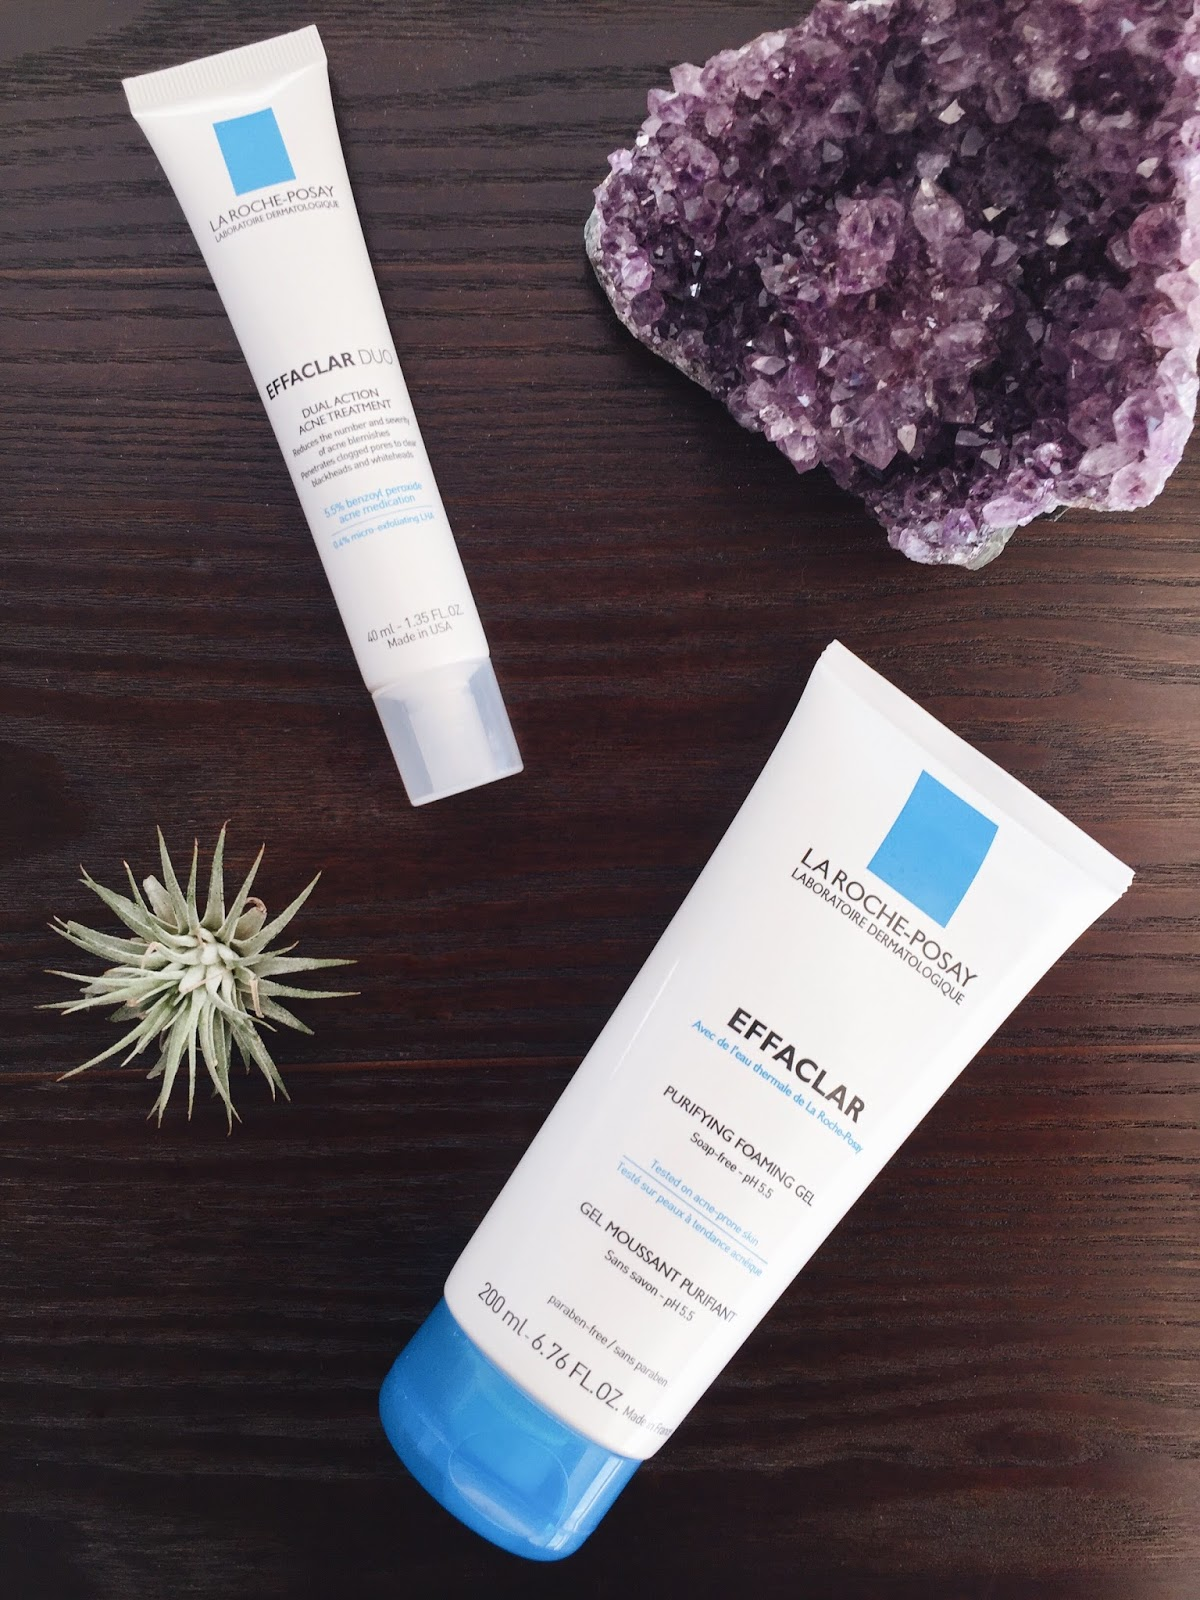 La Roche-Posay Effaclar Duo and Purifying Foaming Gel